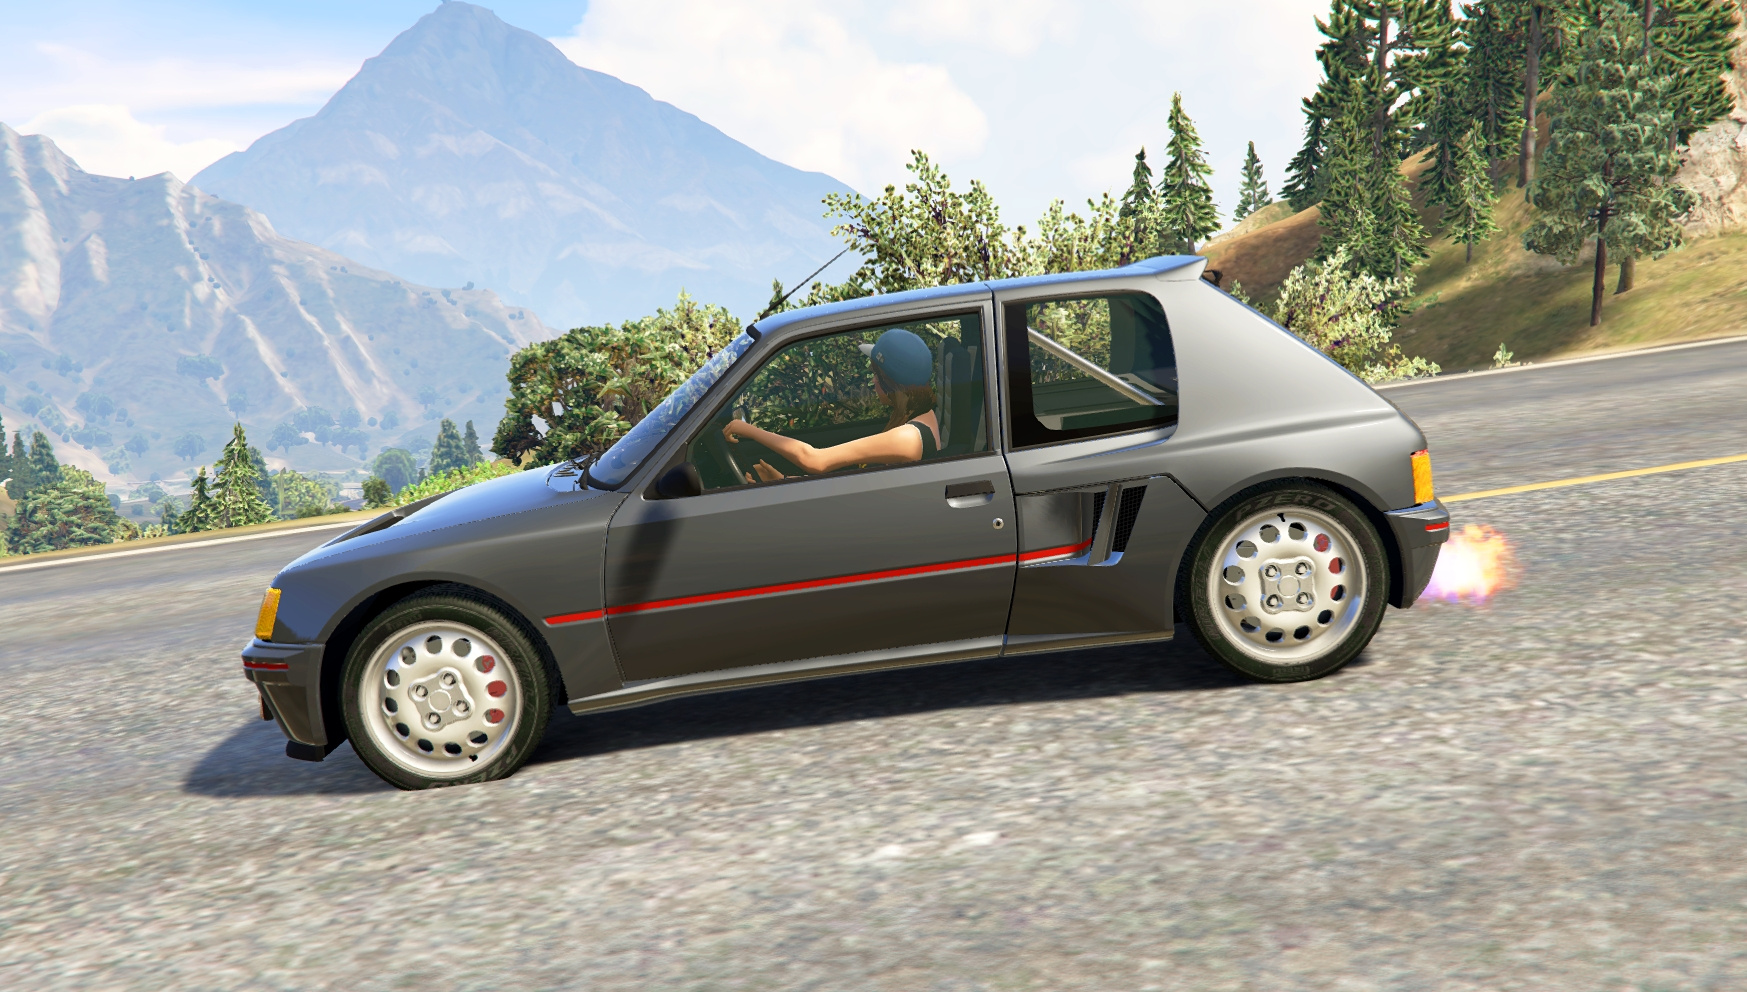 peugeot 205 turbo 16 2in1 add on tuning livery gta5. Black Bedroom Furniture Sets. Home Design Ideas